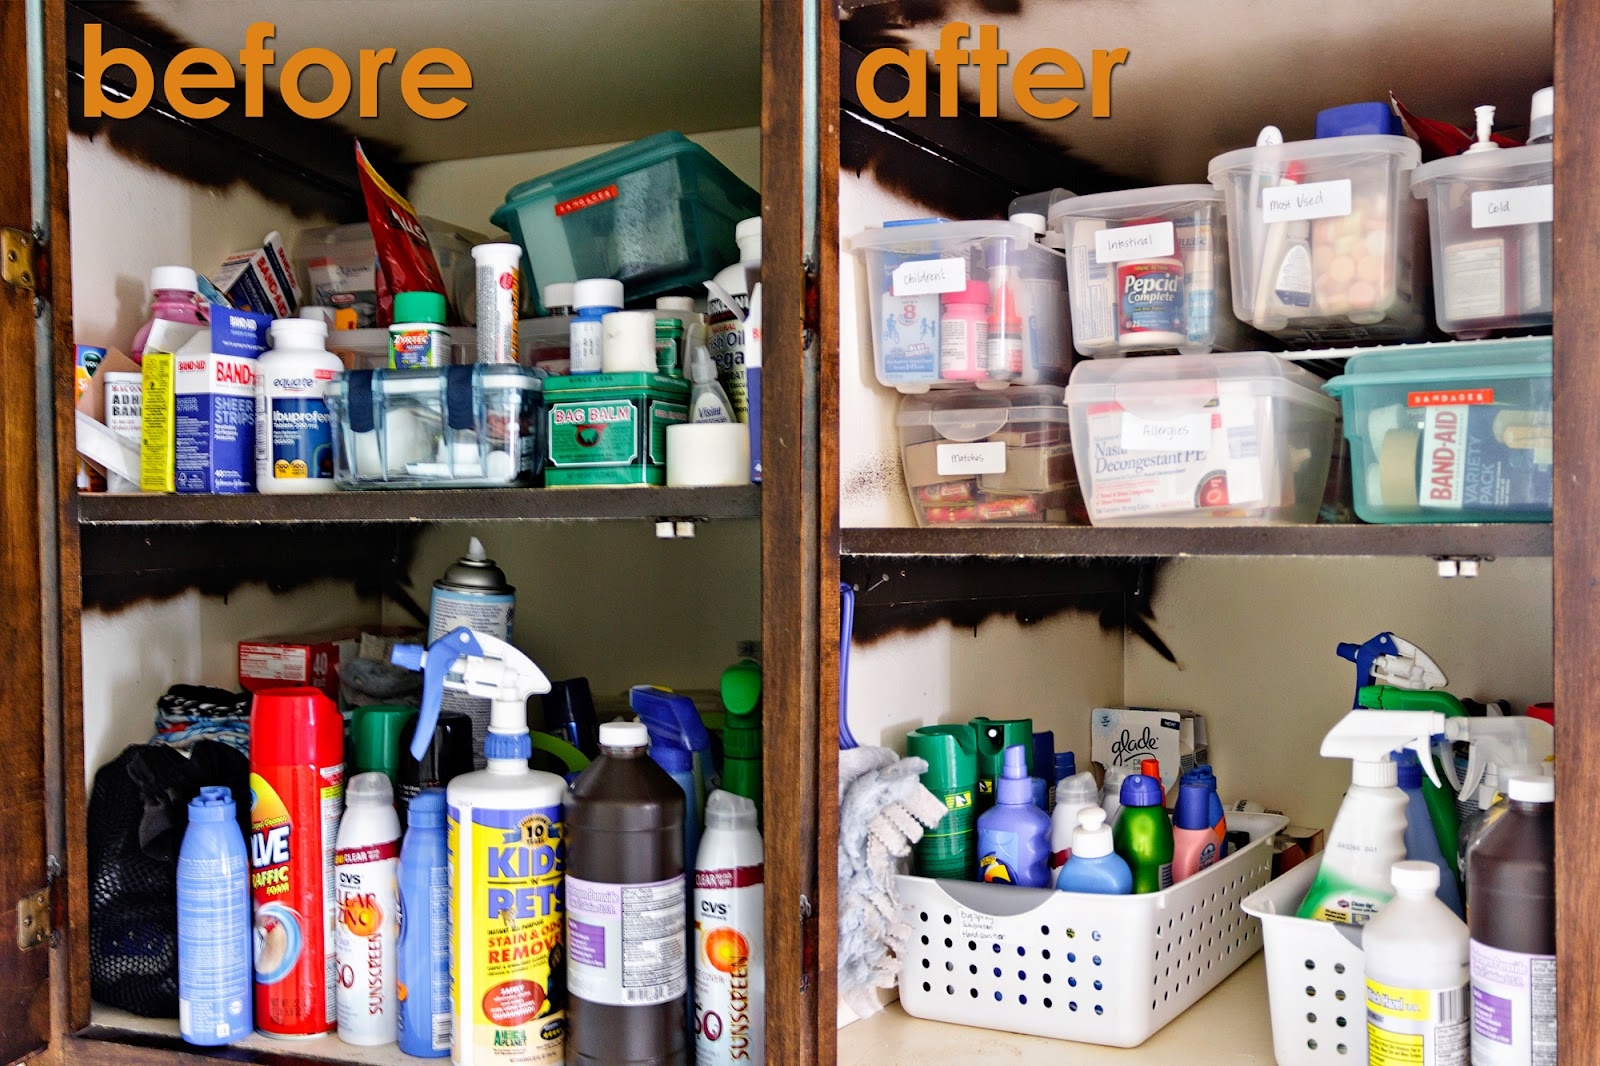 The Finished Product Of A Little Organization: Before And After Shots Of  The Medicine/